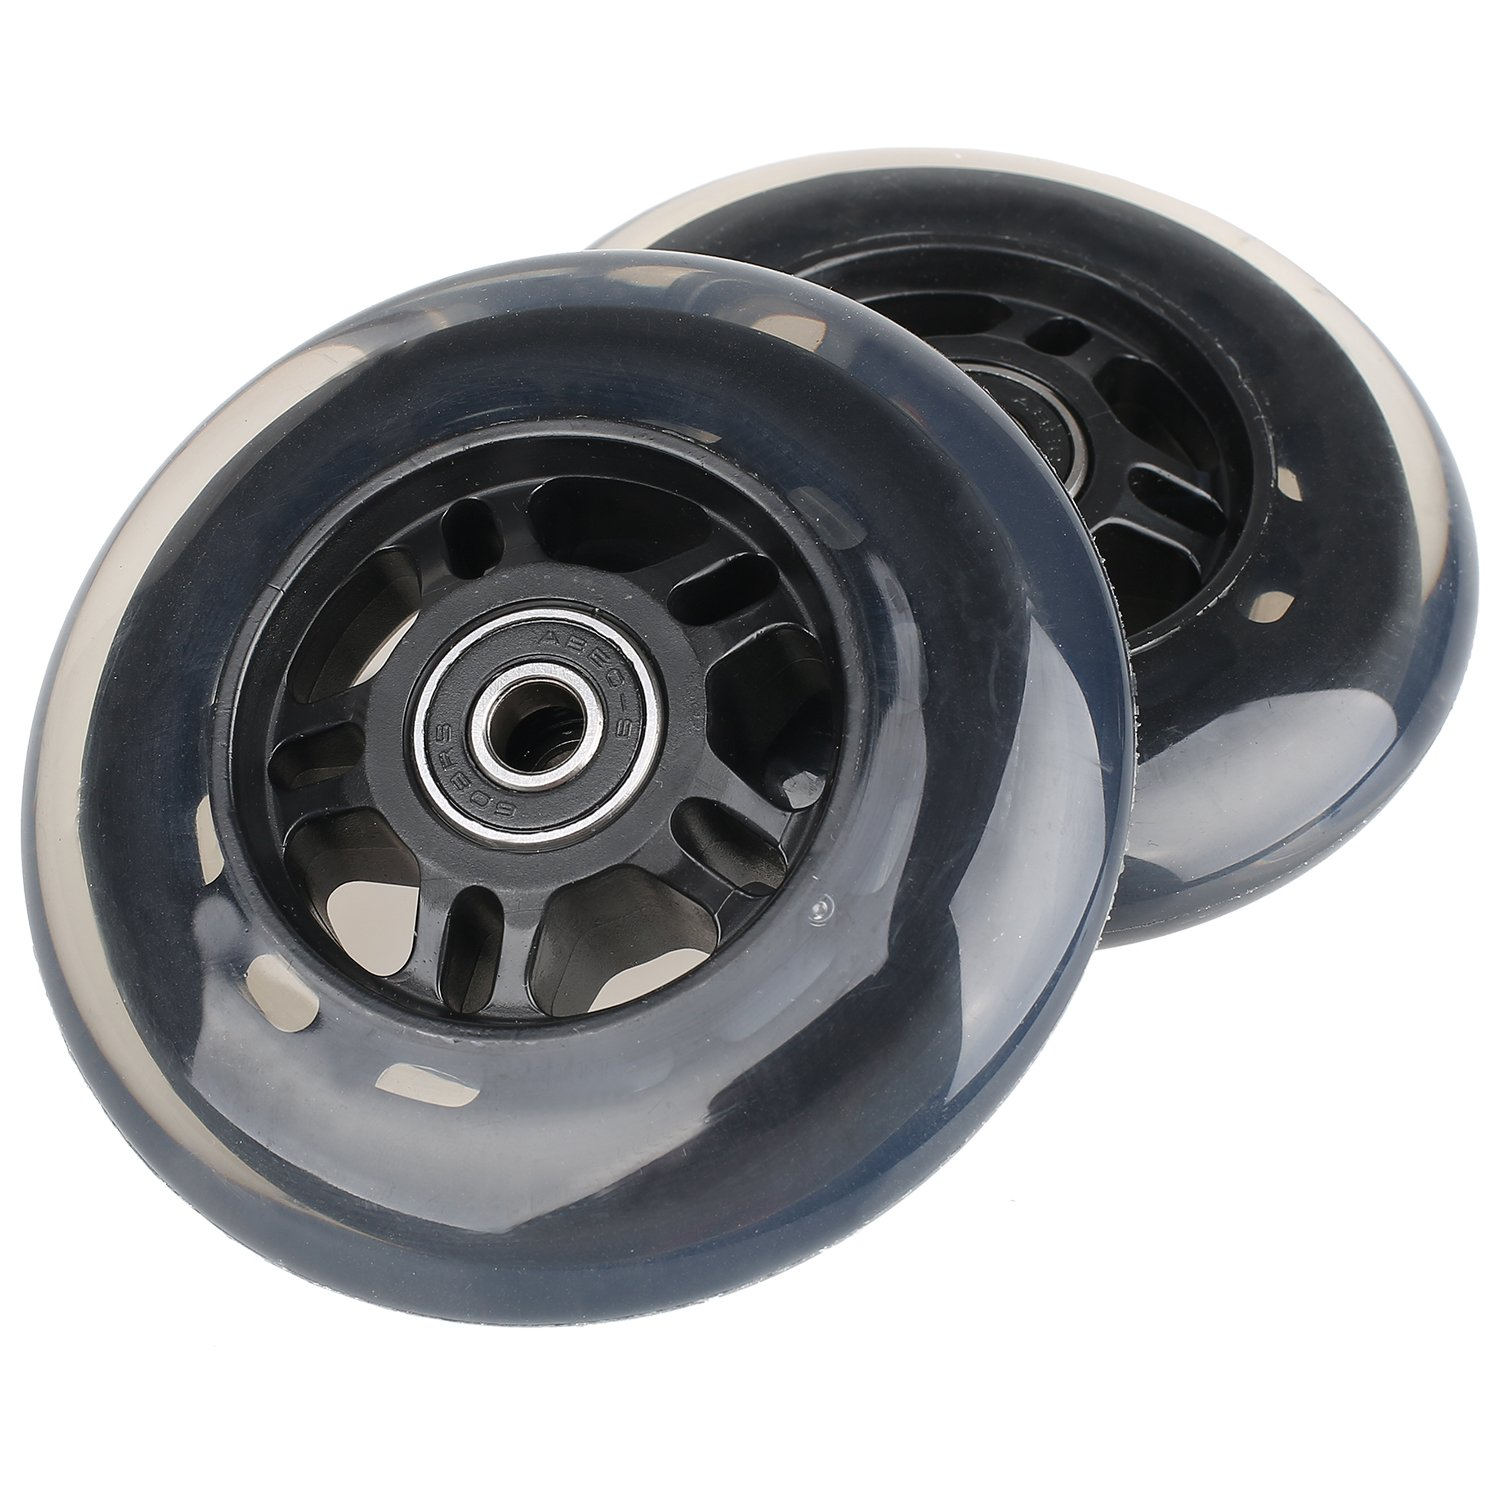 Kutick Scooter Wheels 100mm Replacement Pair With Abec-9 Bearing for RAZOR SCOOTER,Ripstik and EzyRoller